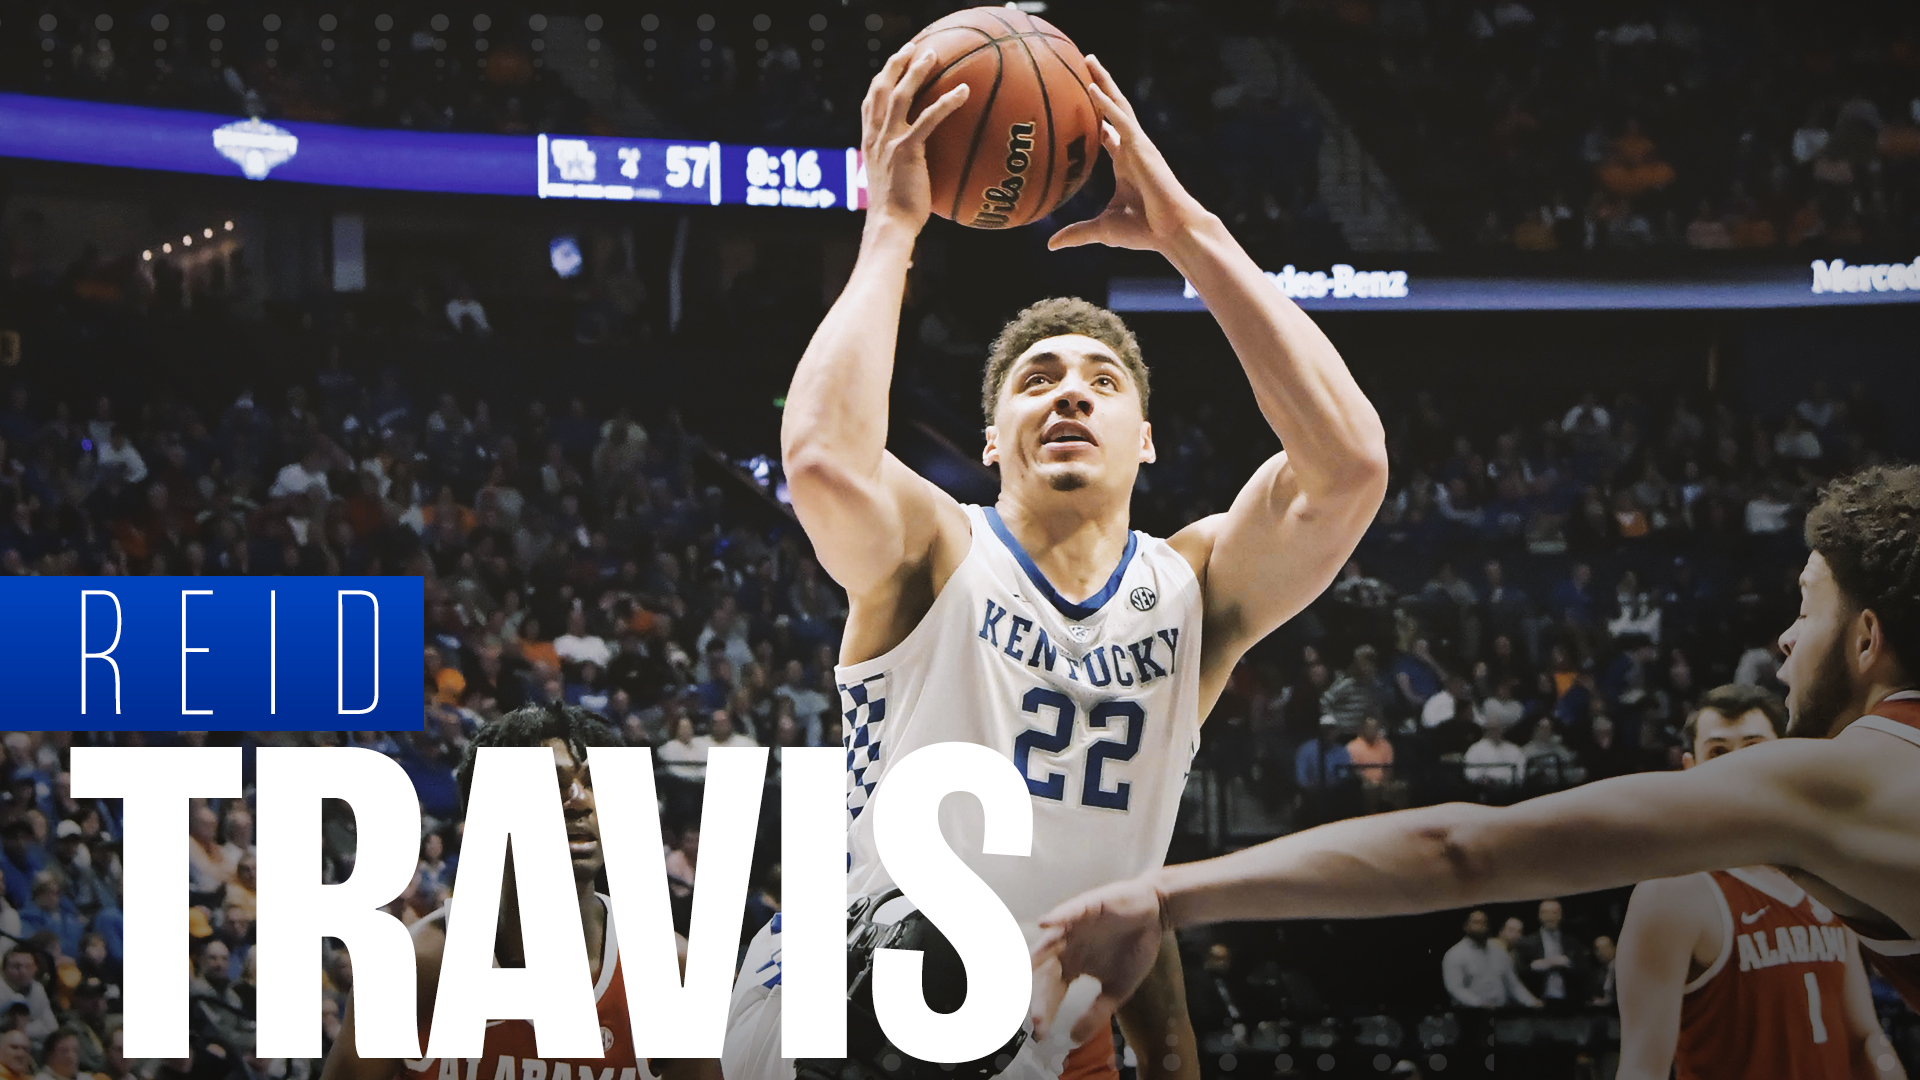 2019 NBA Draft Profile: Reid Travis, Kentucky